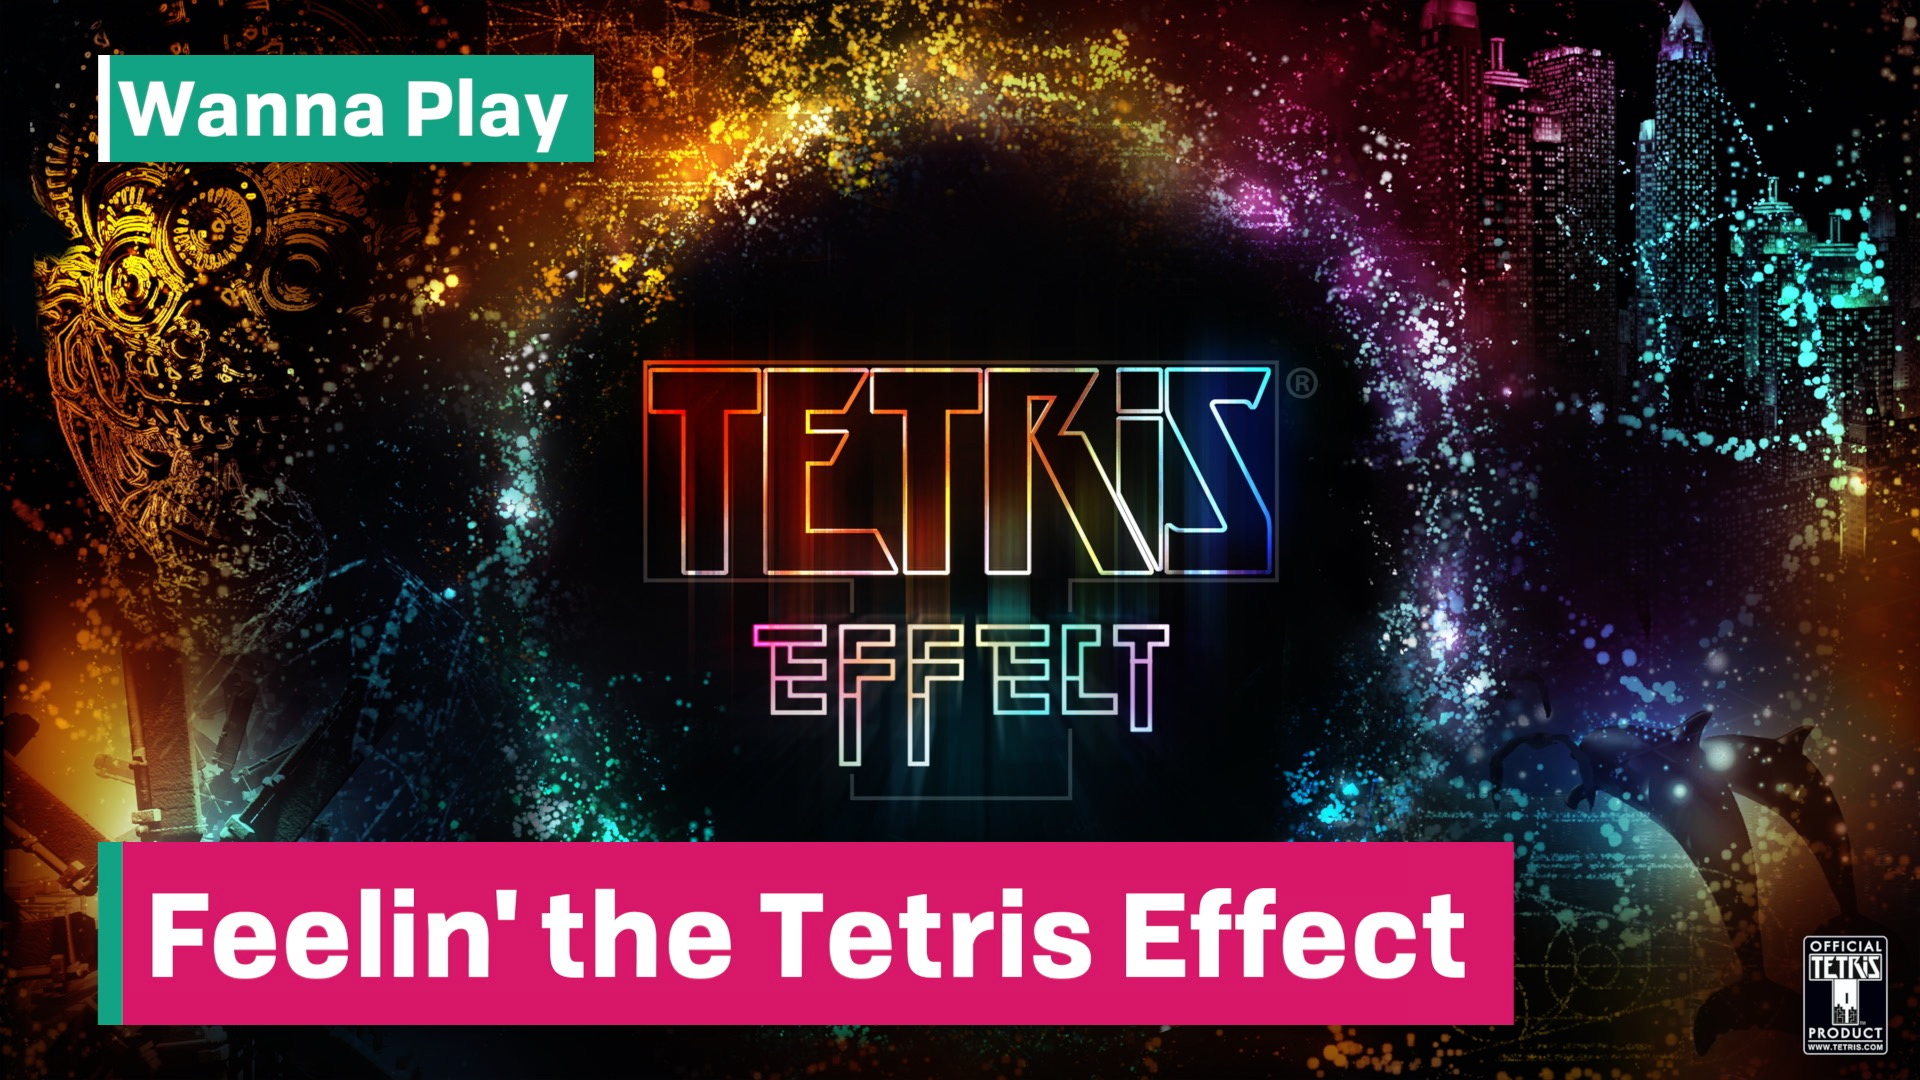 Feelin' the Tetris Effect | Squeaky Whale